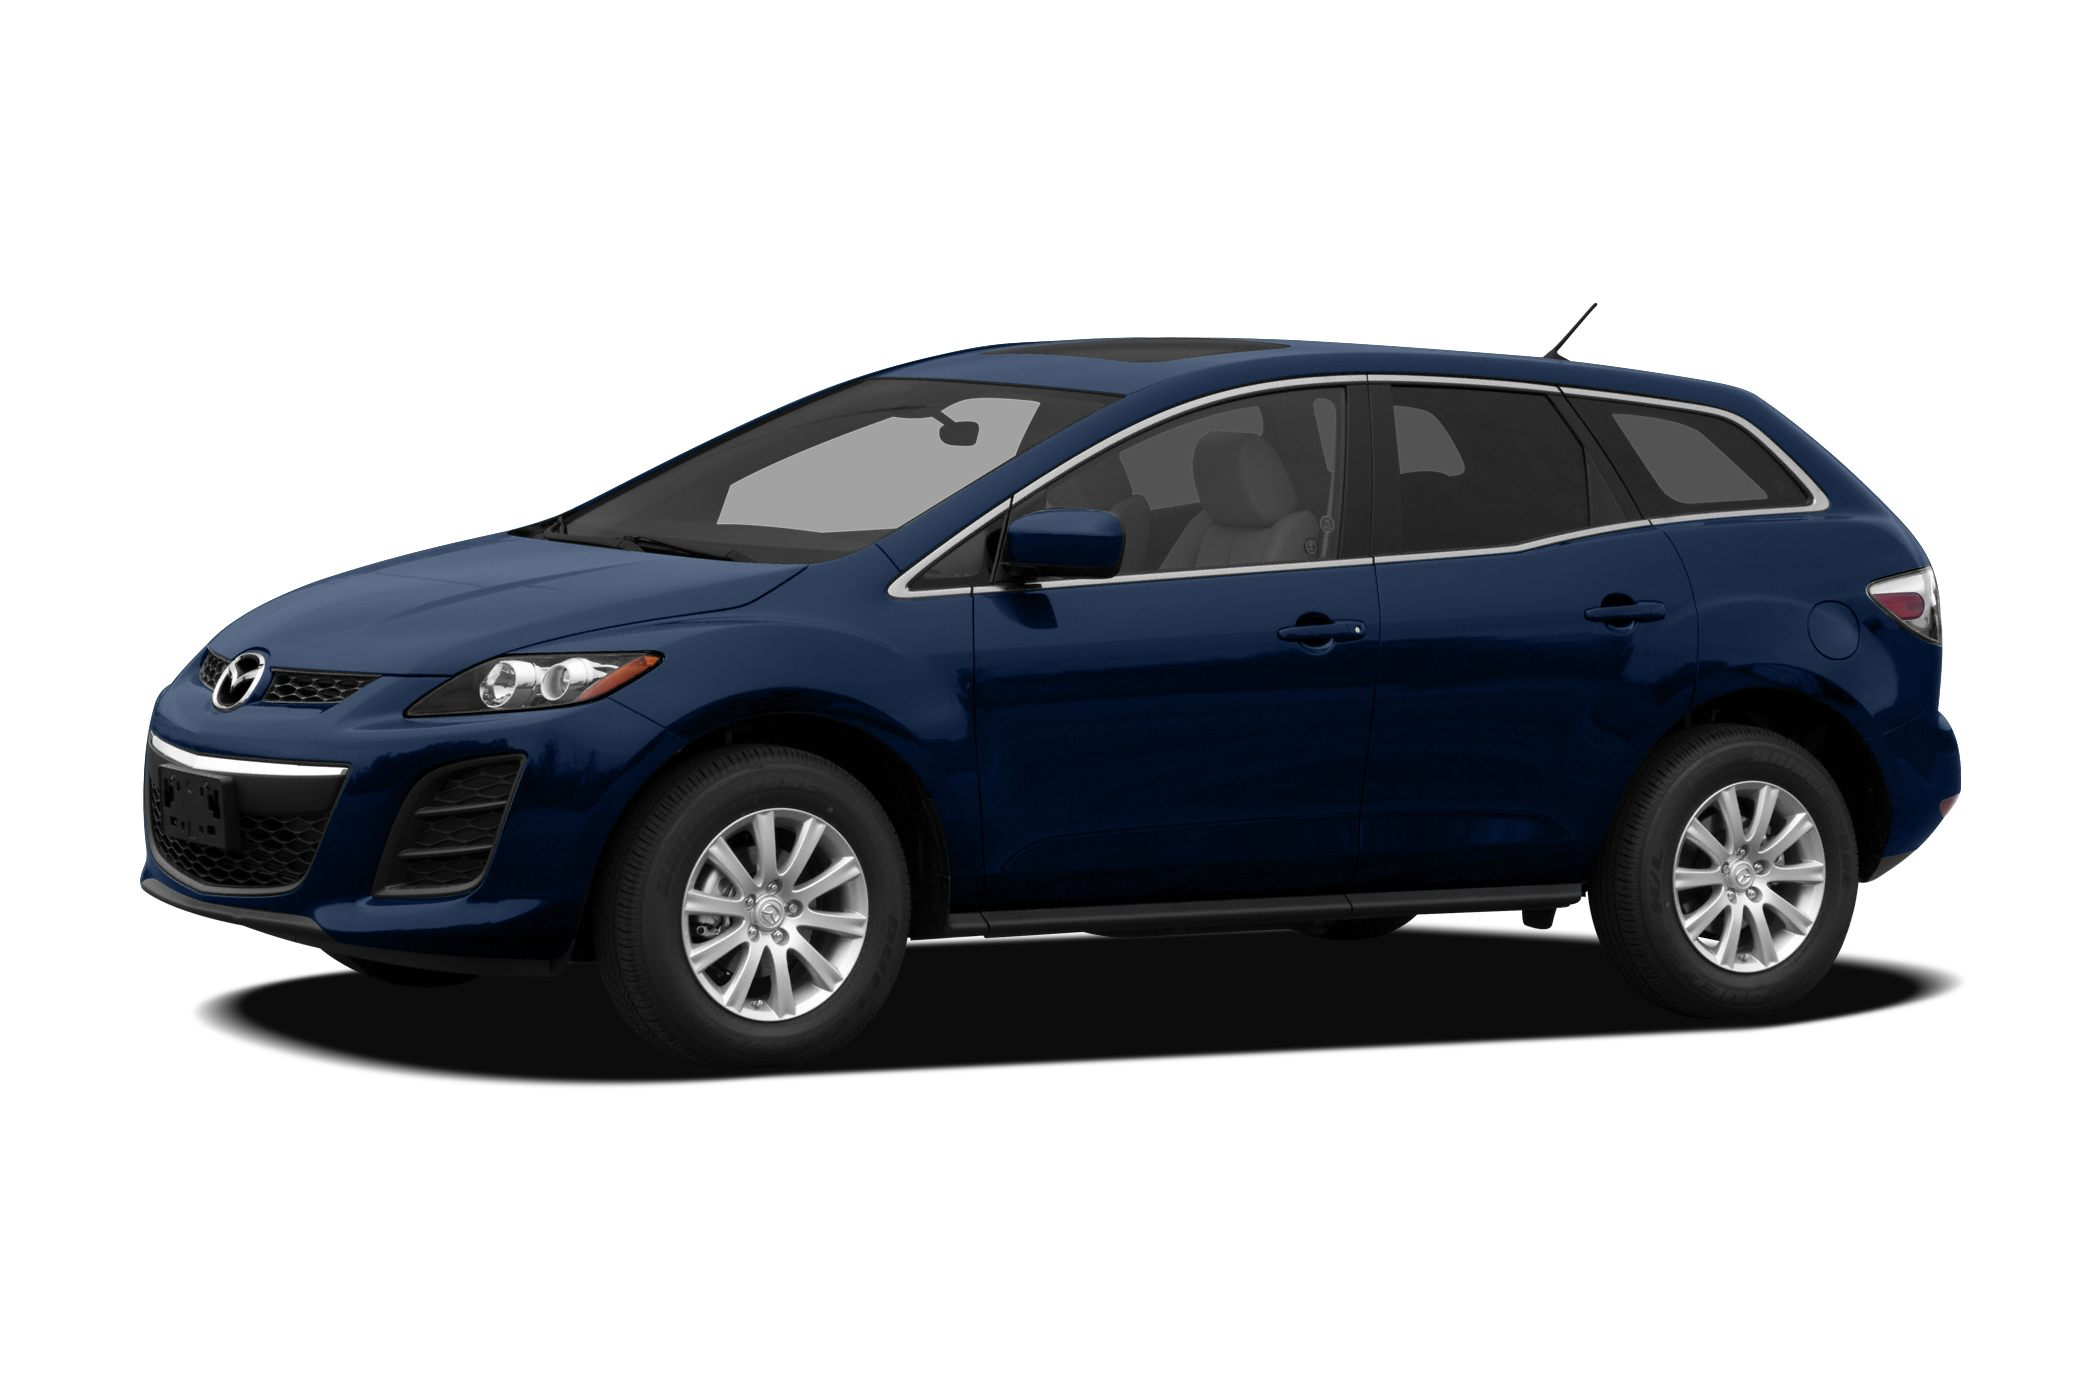 Mazda CX-7 News, Photos and Buying Information - Autoblog